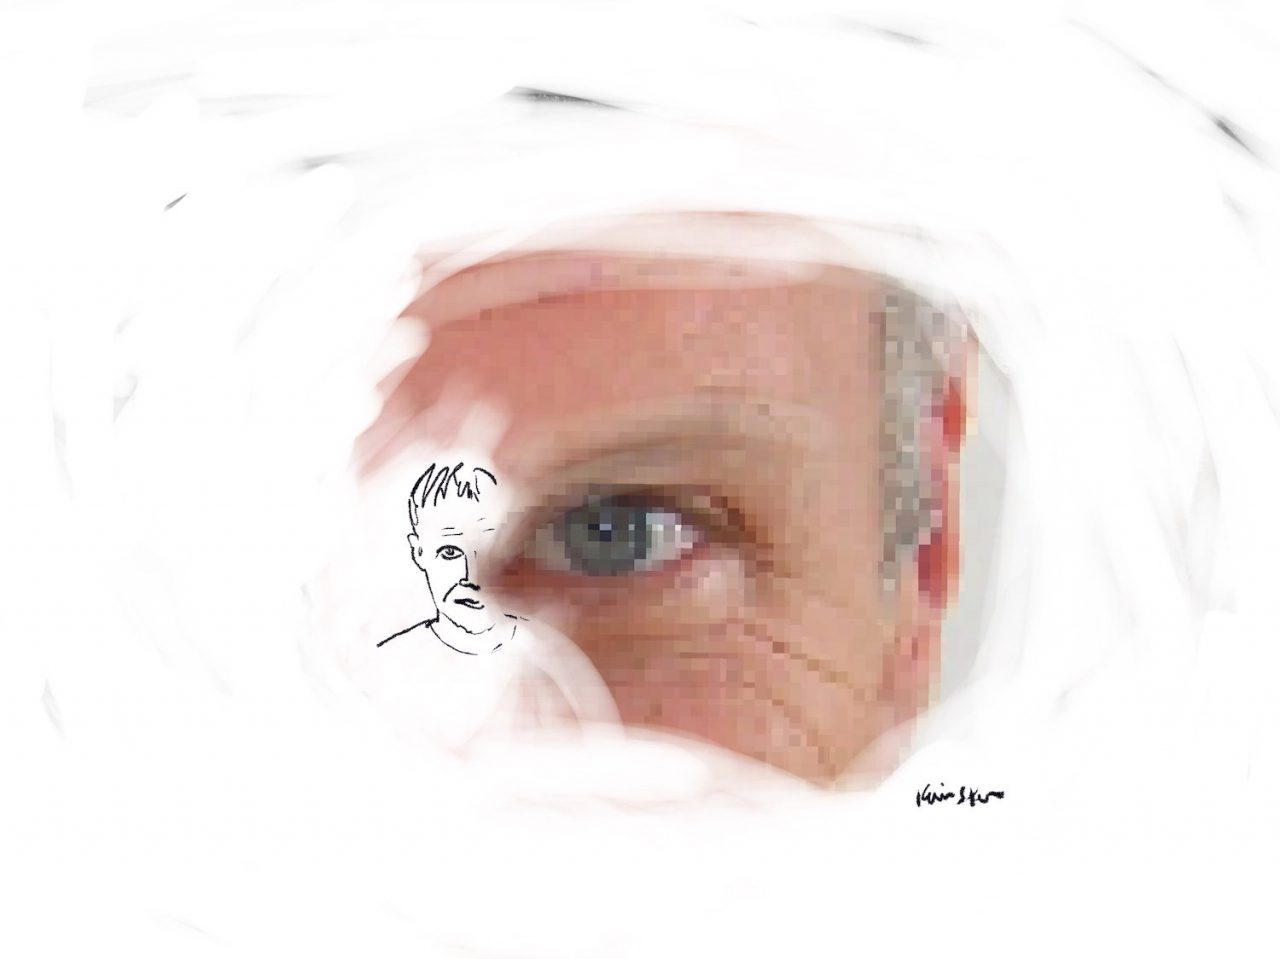 A pixelated photo of Dennis Cooper's eye and ear merges with a smaller sketch of the rest of his face.